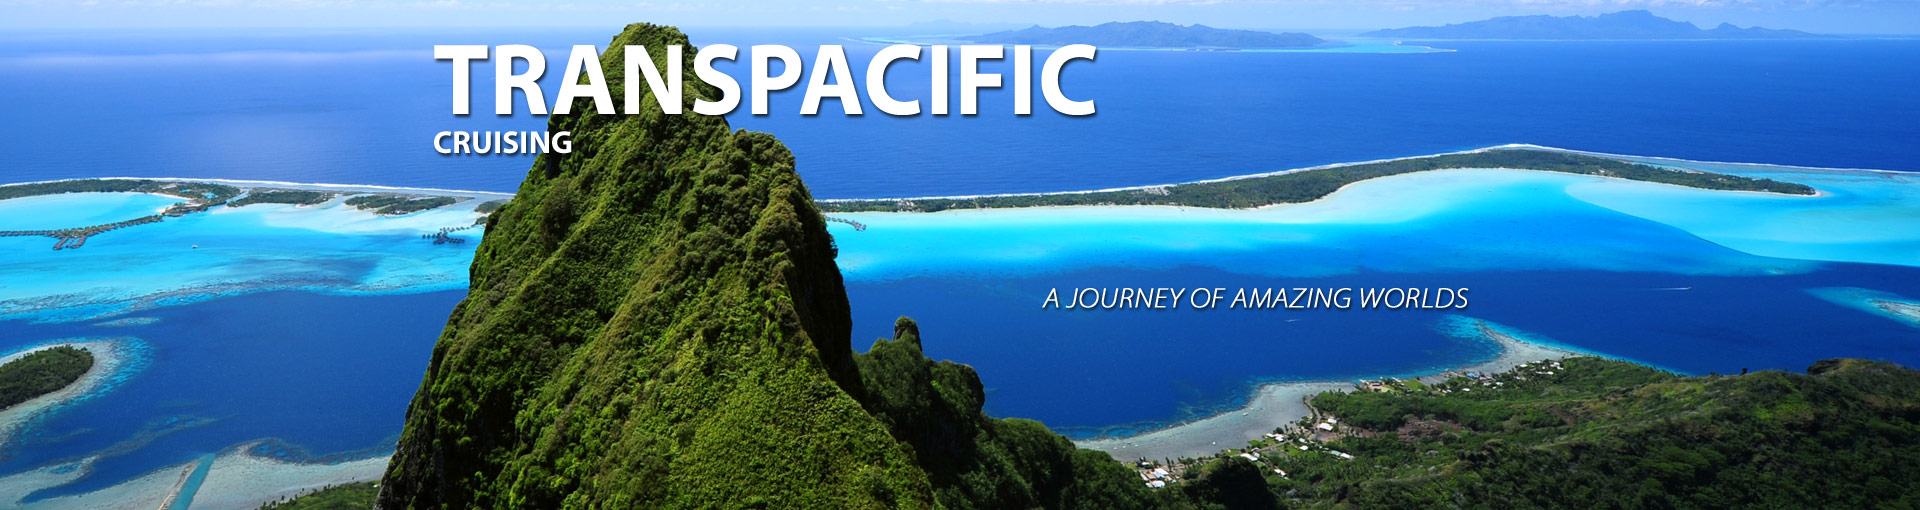 Transpacific cruises through amazing worlds